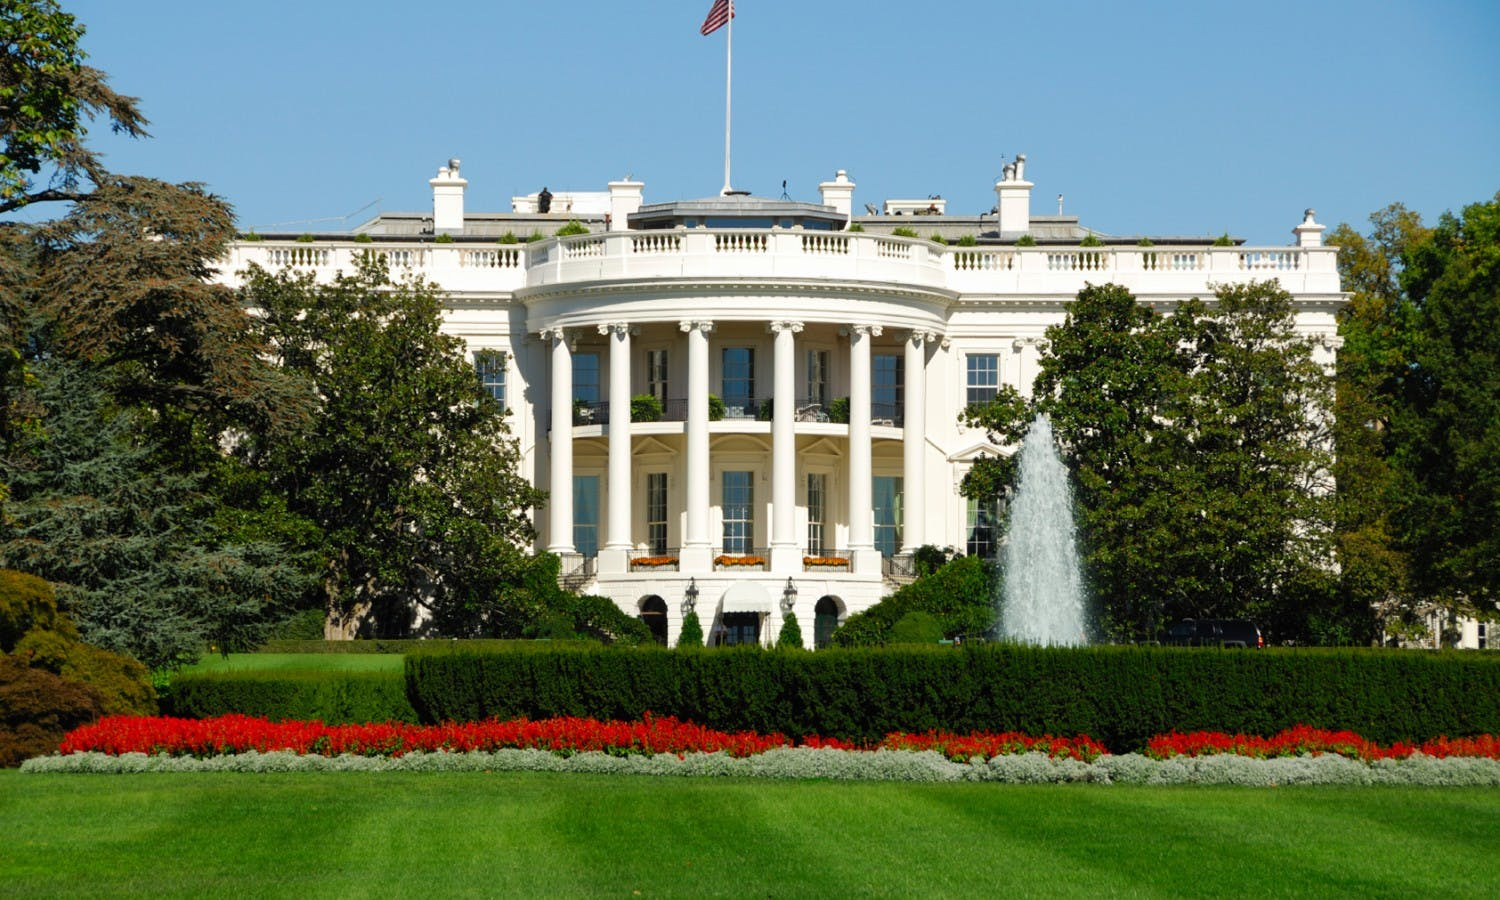 The White House and National Mall Highlights Walking Tour